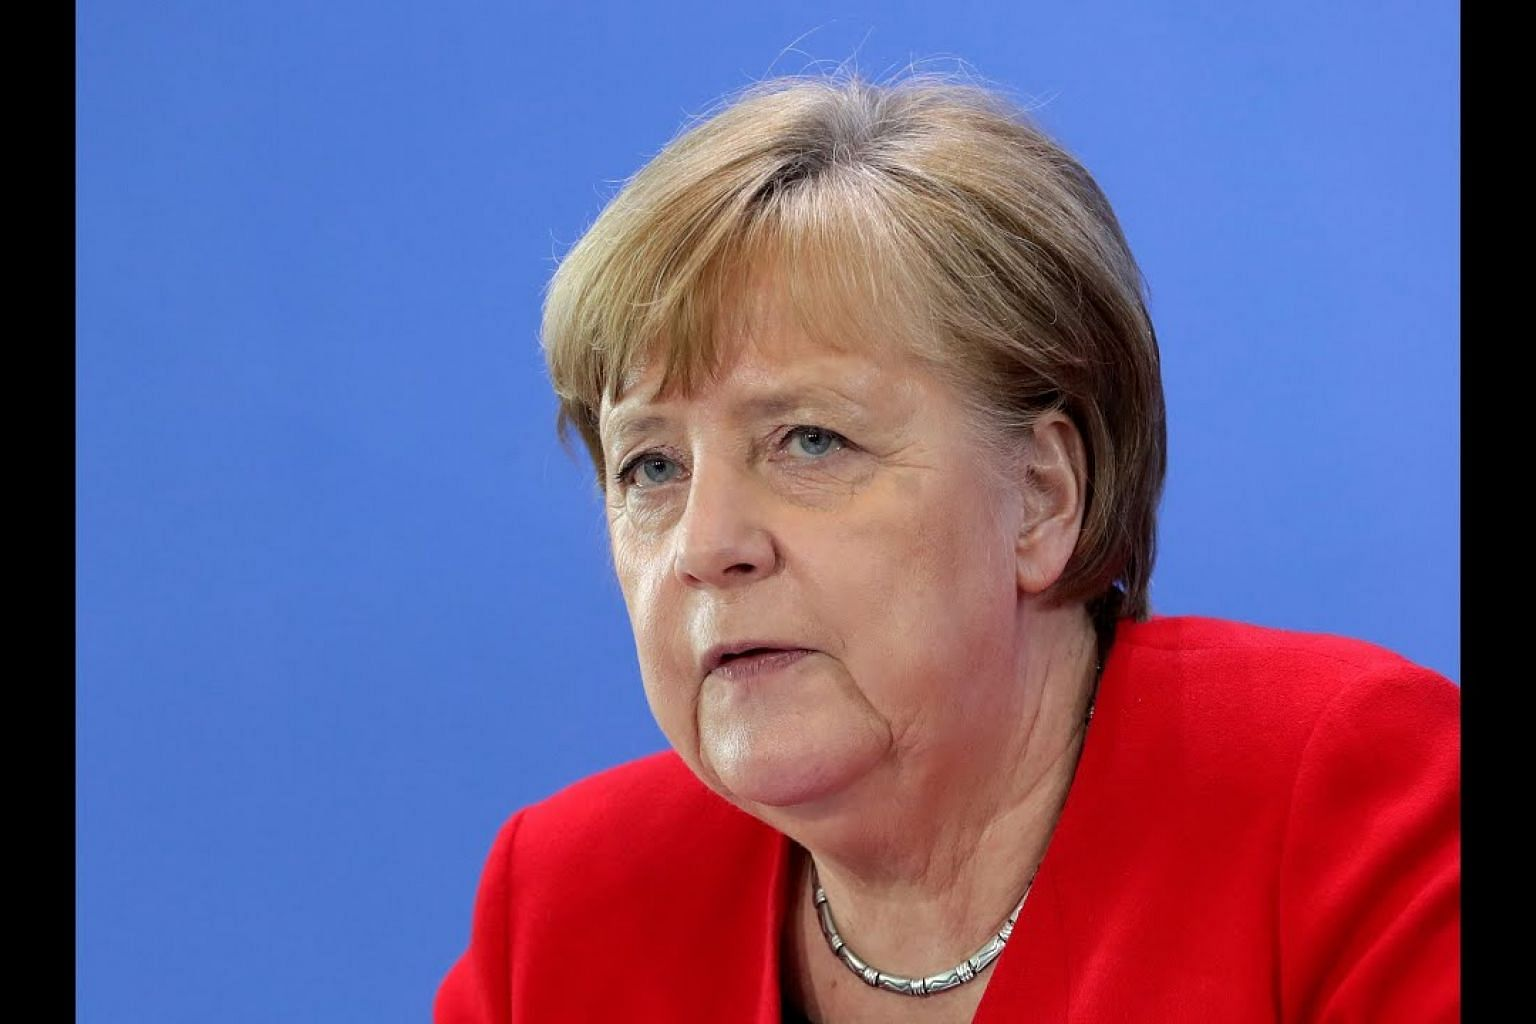 Merkel: We can be a bit bold but must be careful on easing lockdown